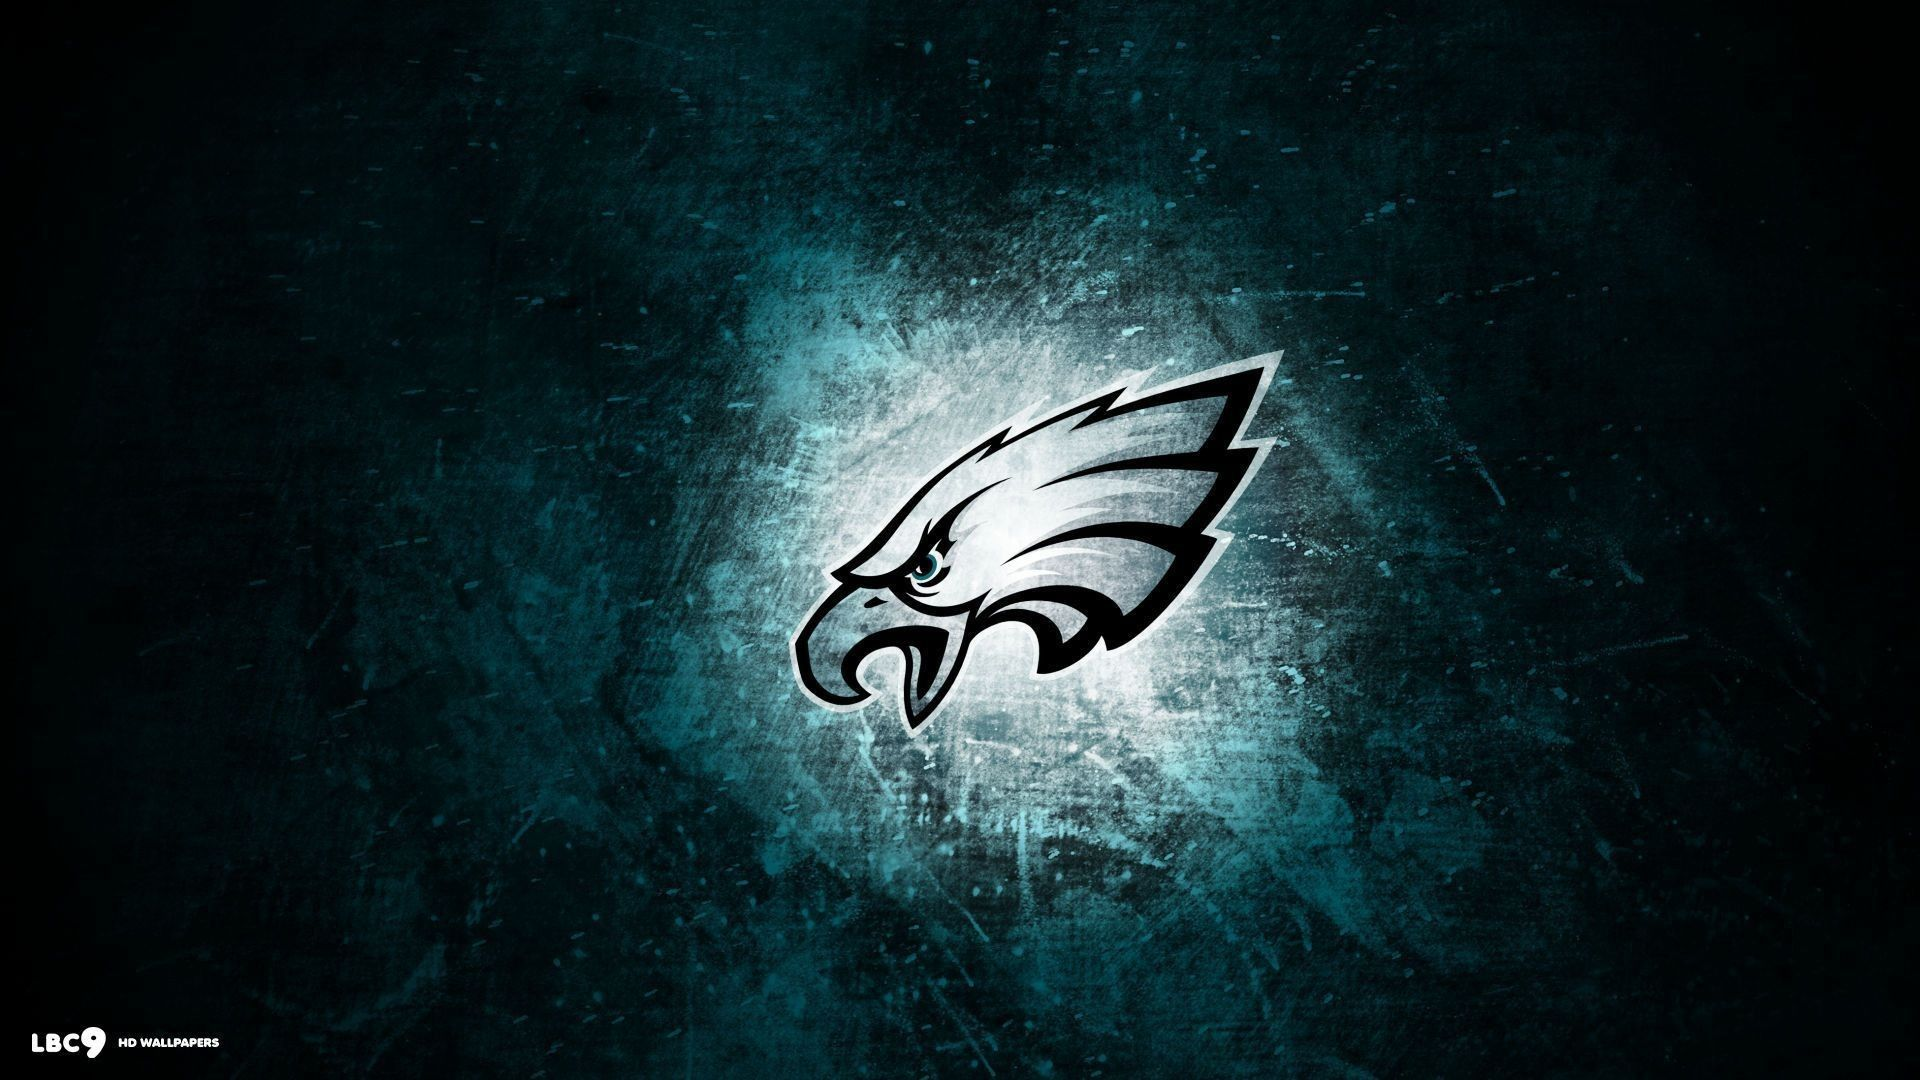 Nfl Wallpapers Philadelphia Eagles Wallpaper Philadelphia Eagles Logo Philadelphia Eagles Schedule